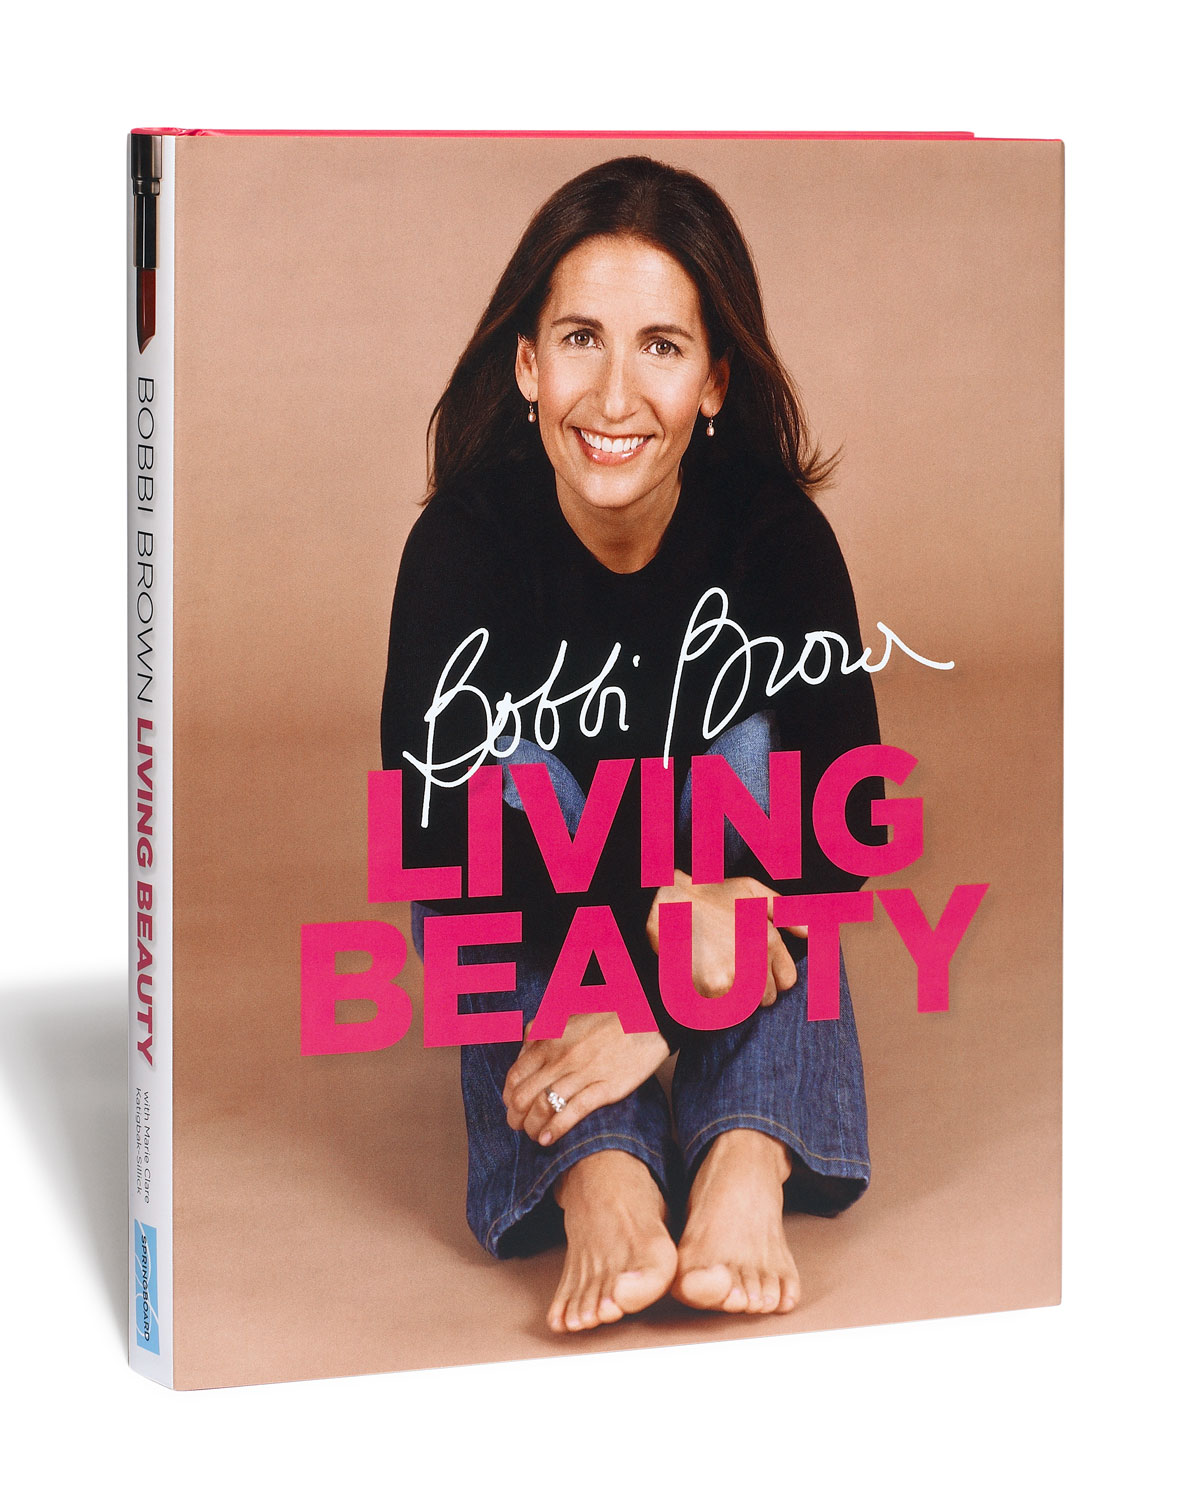 Living Beauty Book - Bobbi Brown